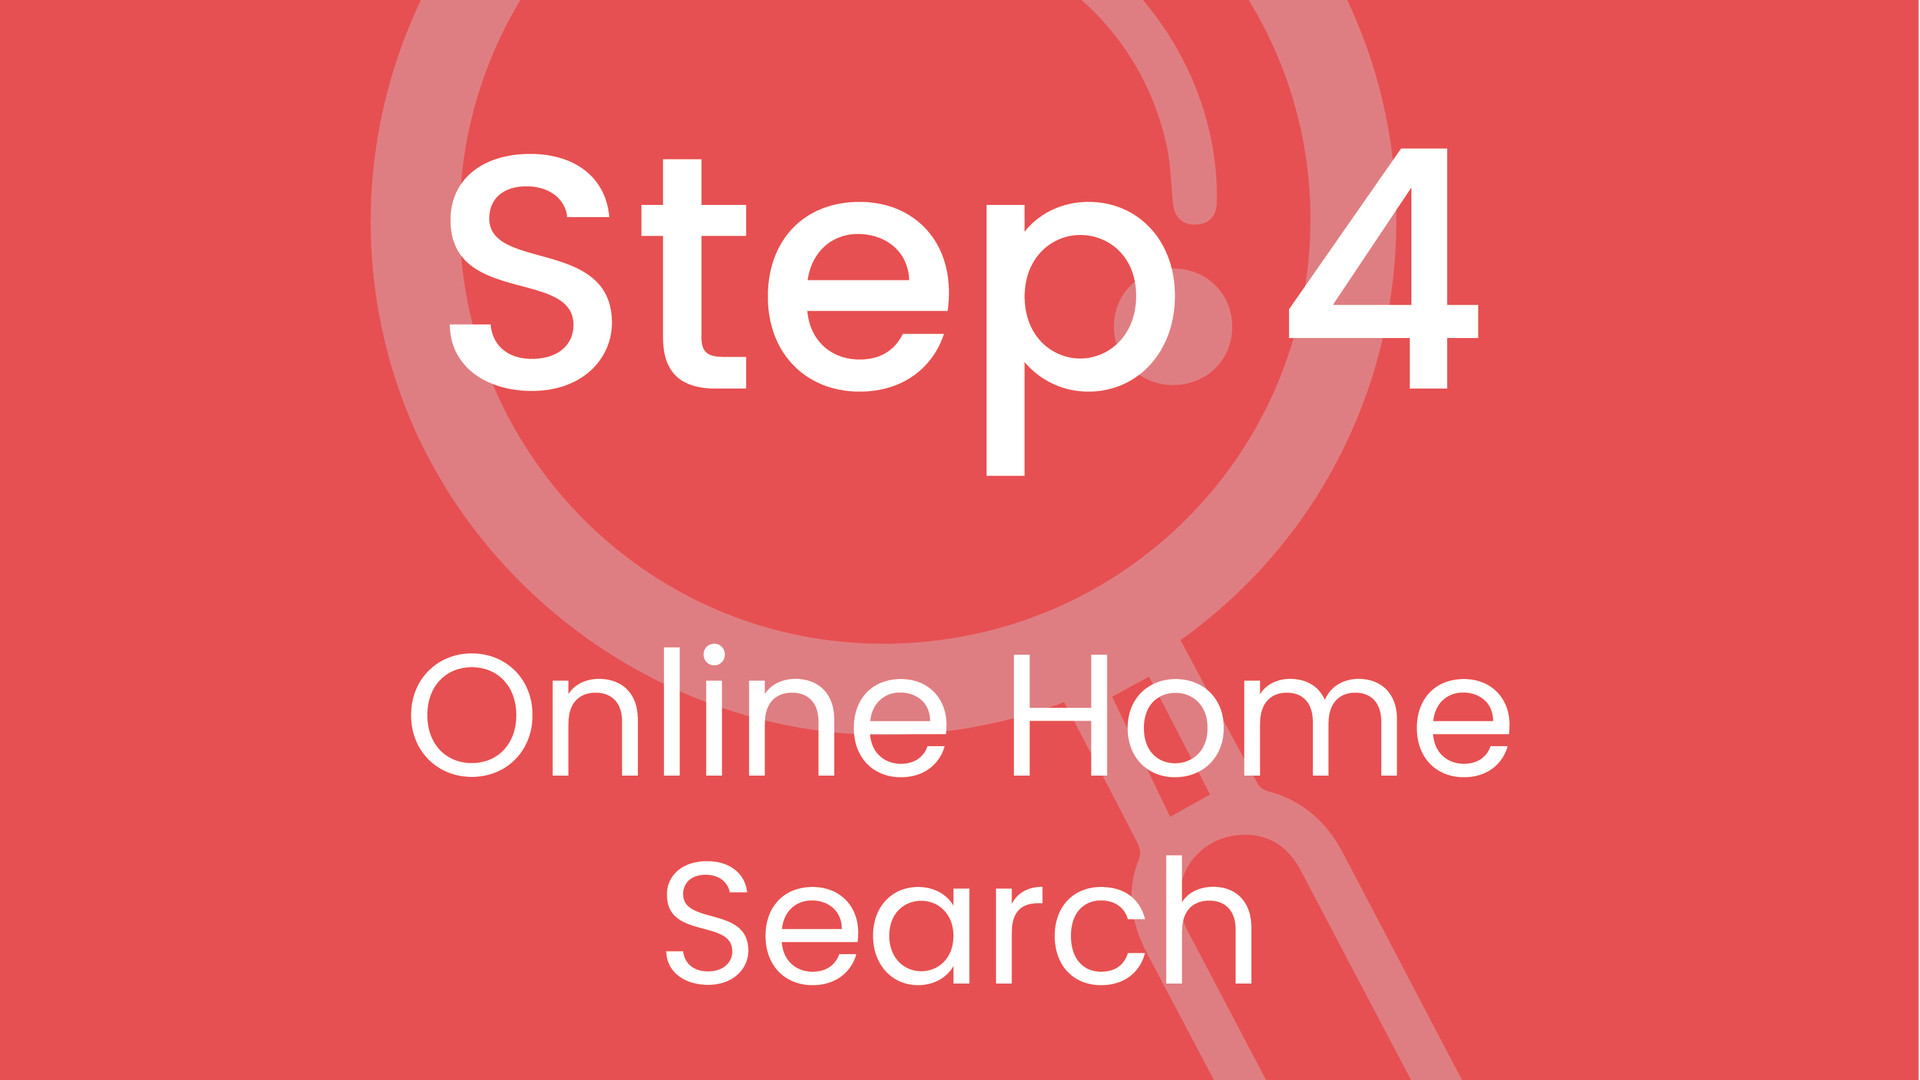 Step 4: Online Home Search